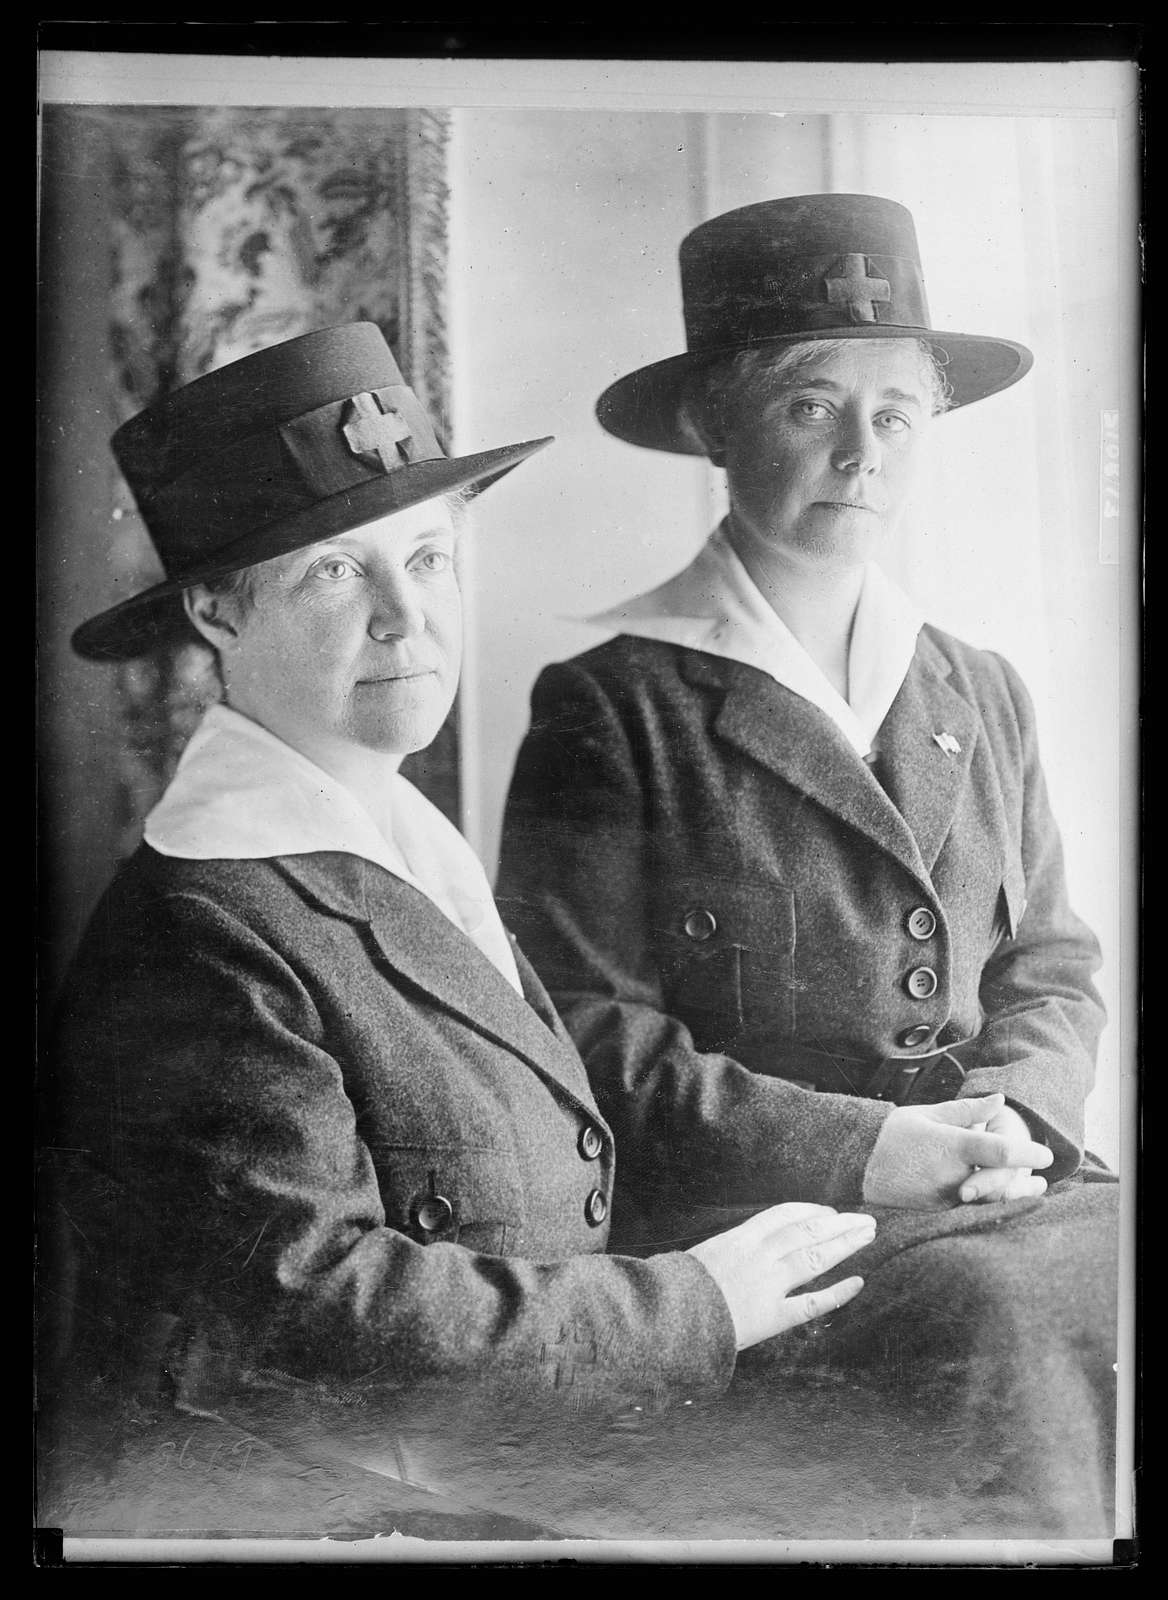 Left to right: the Misses Emma and Katherine Lansing, sisters of Sec. of State Robert Lansing, who are in France doing Red Cross work. This is the first photograph of them in uniform. They are going to establish aid stations for the soldiers at the front